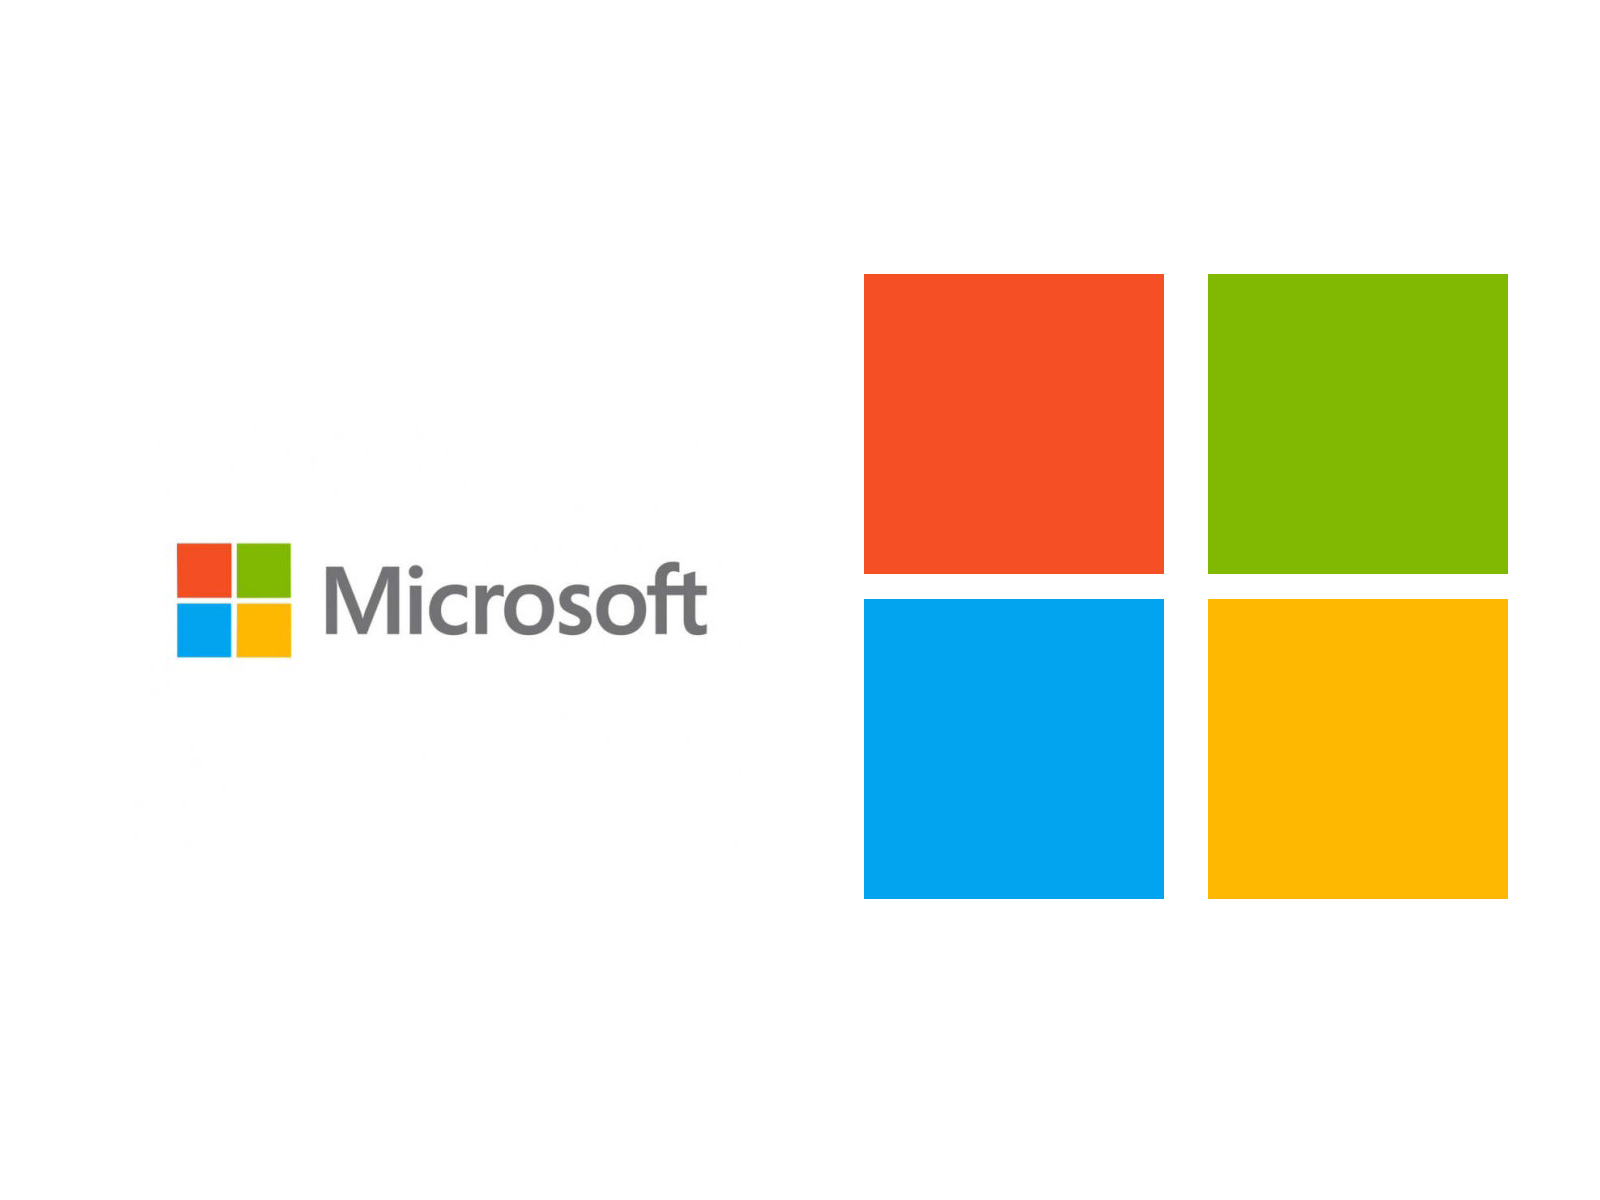 how to download powerpoint templates from microsoft - microsoft logo backgrounds blue green orange